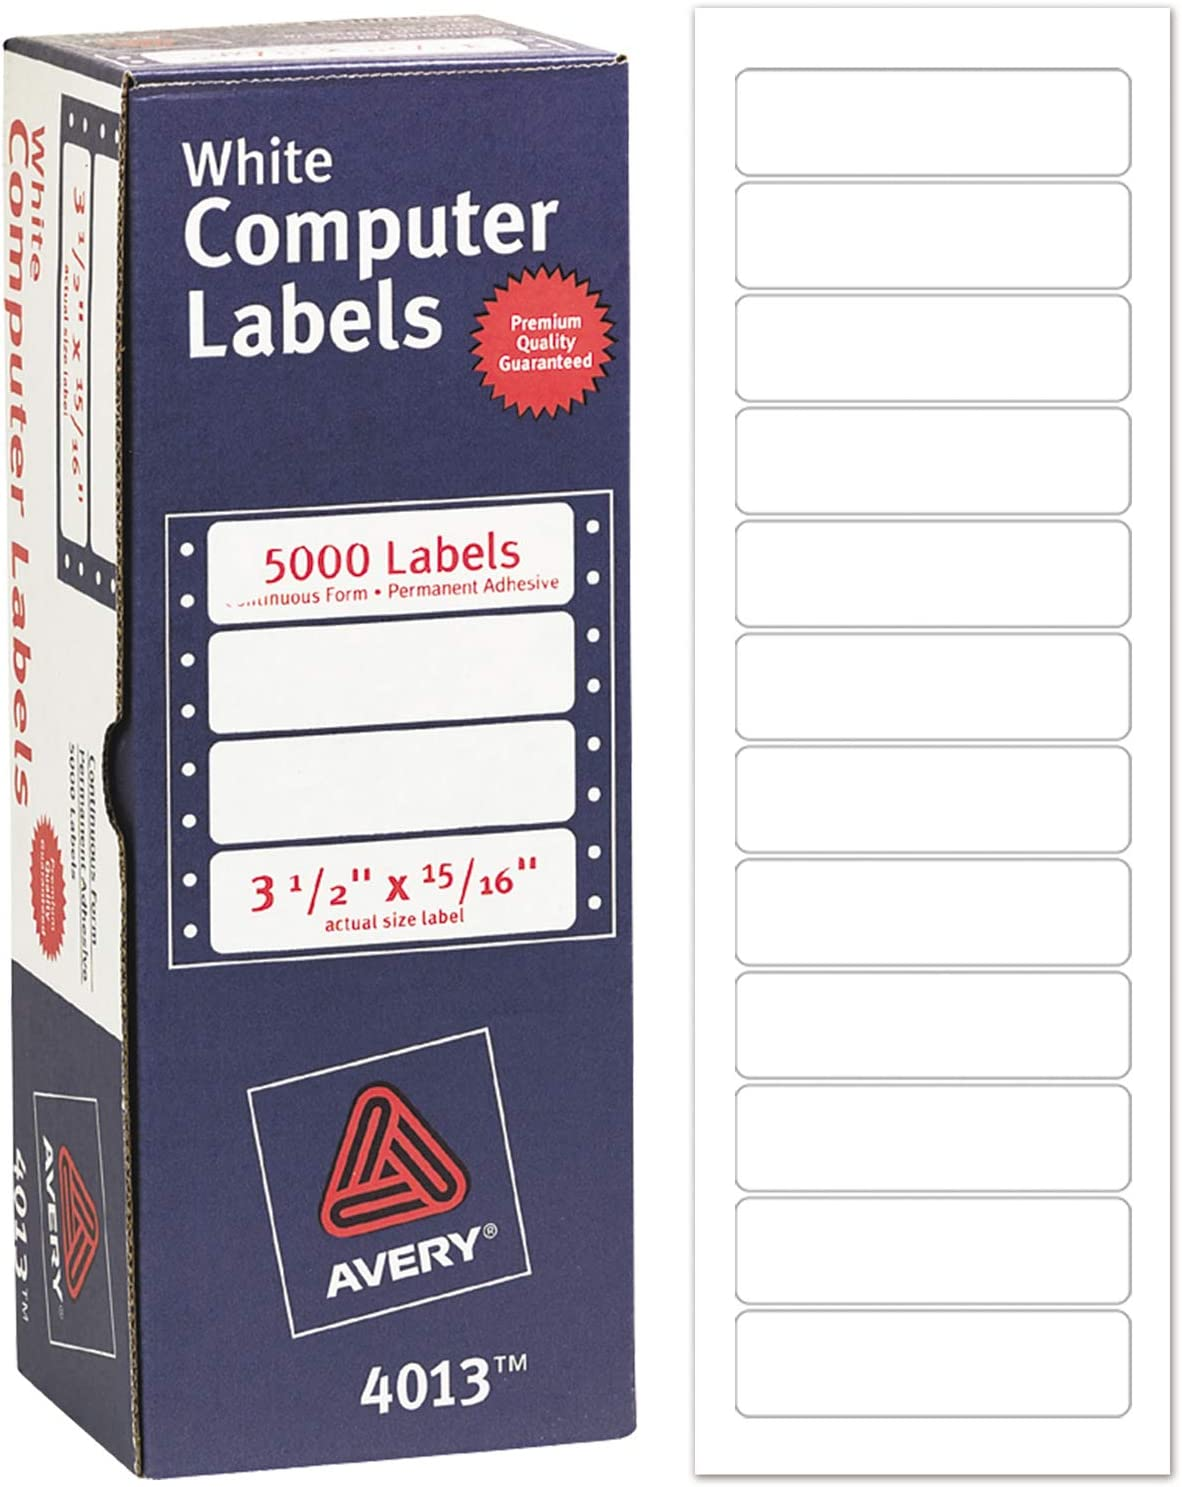 "Avery Dot Matrix Printer Address Labels, 15/16"" x 3 1/2"", 5, 000 White Labels (4013) : Address Labels : Office Products"